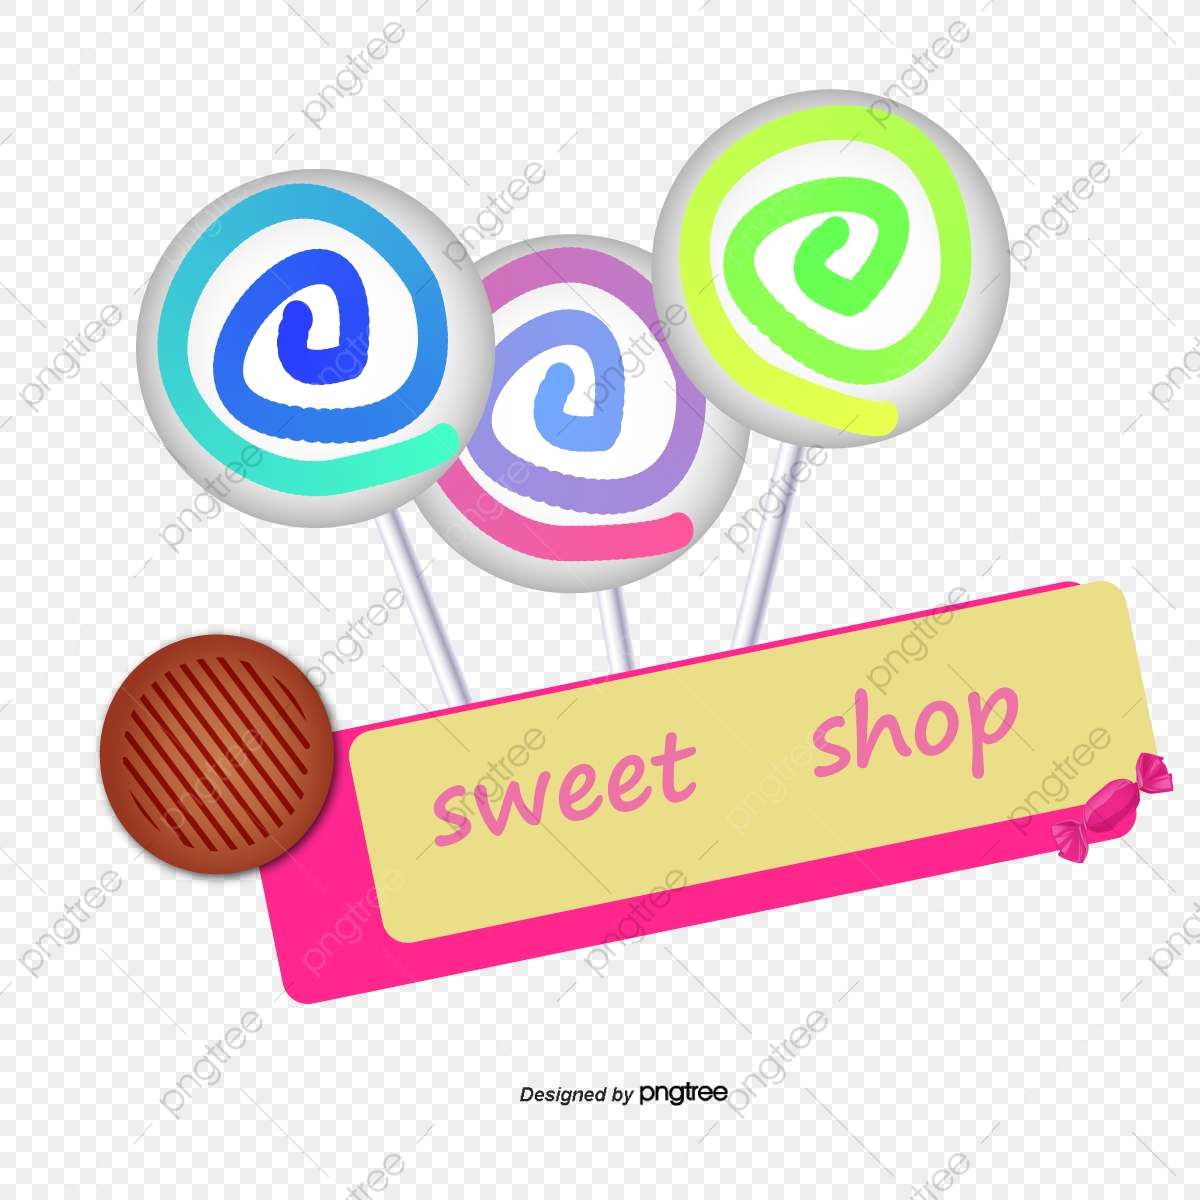 picture transparent download Colored sign decoration png. Vector candy shop